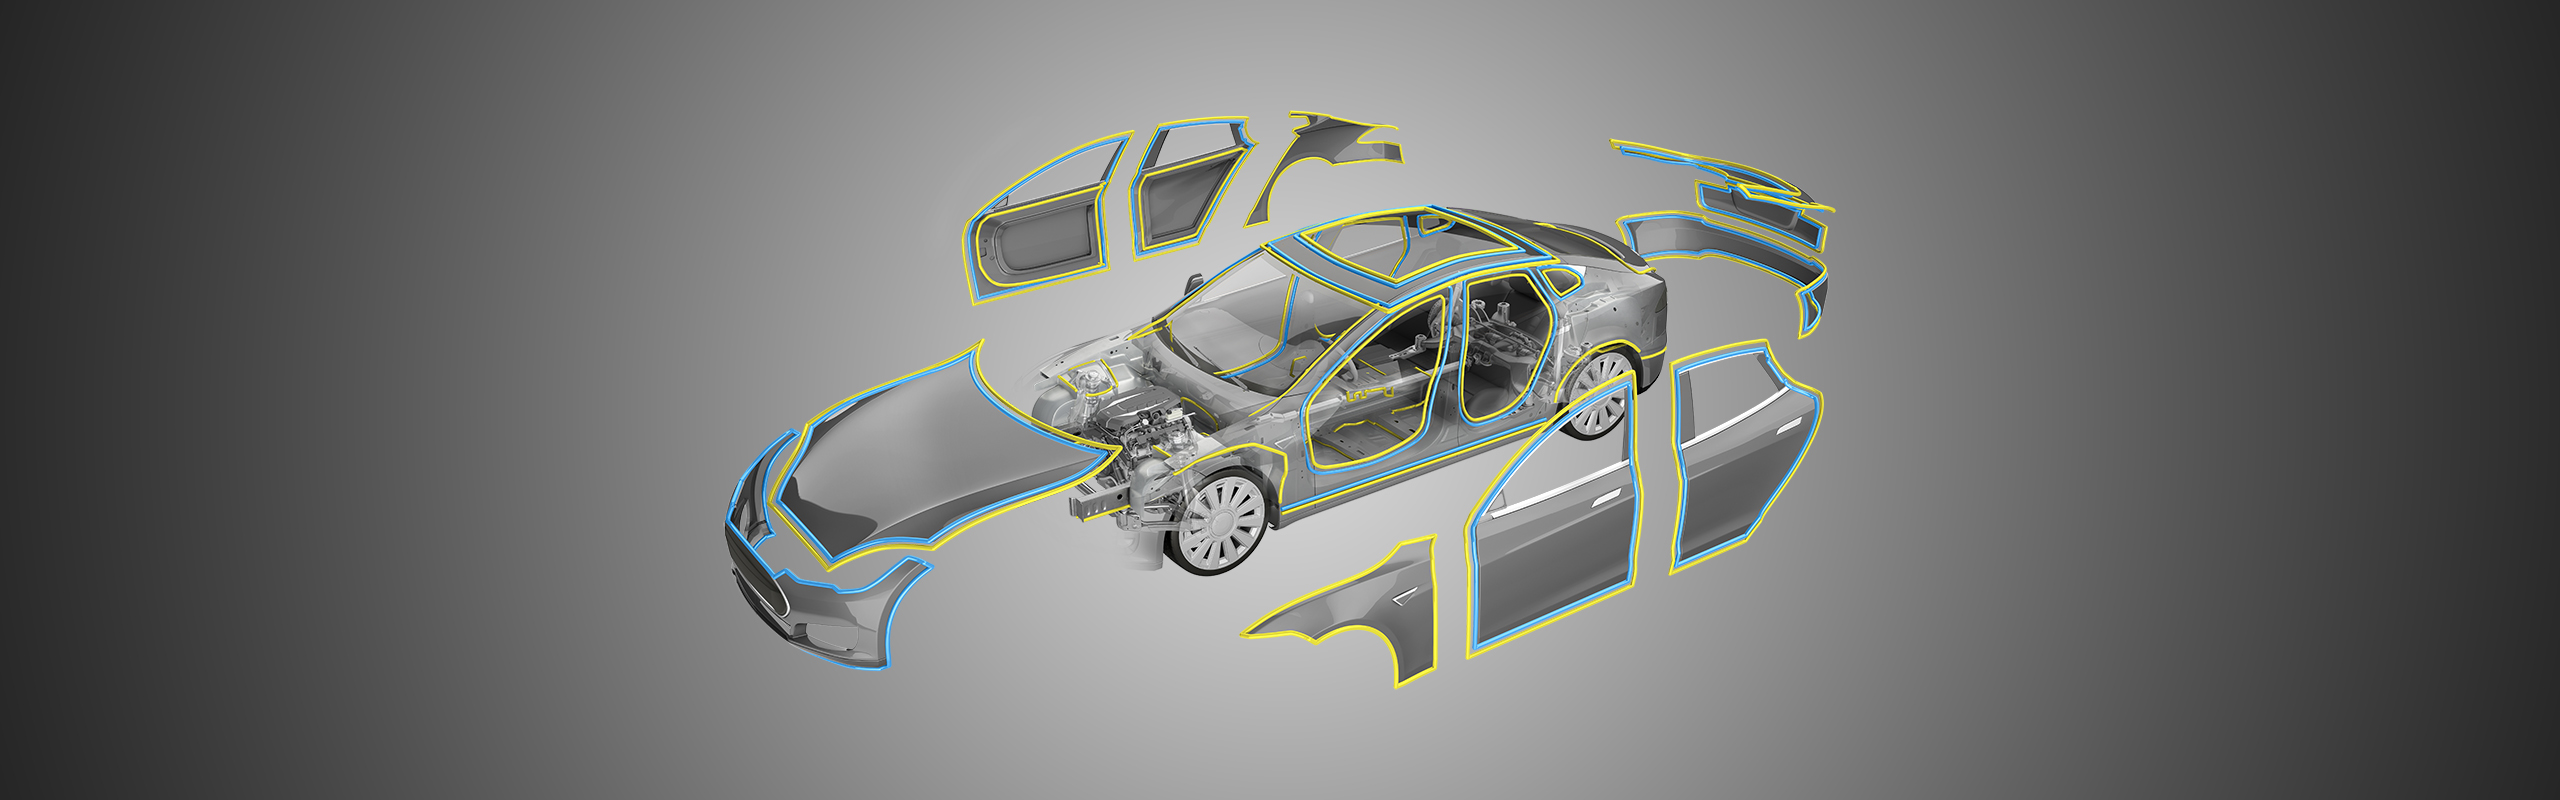 Structural Adhesives For Automobiles Automotive